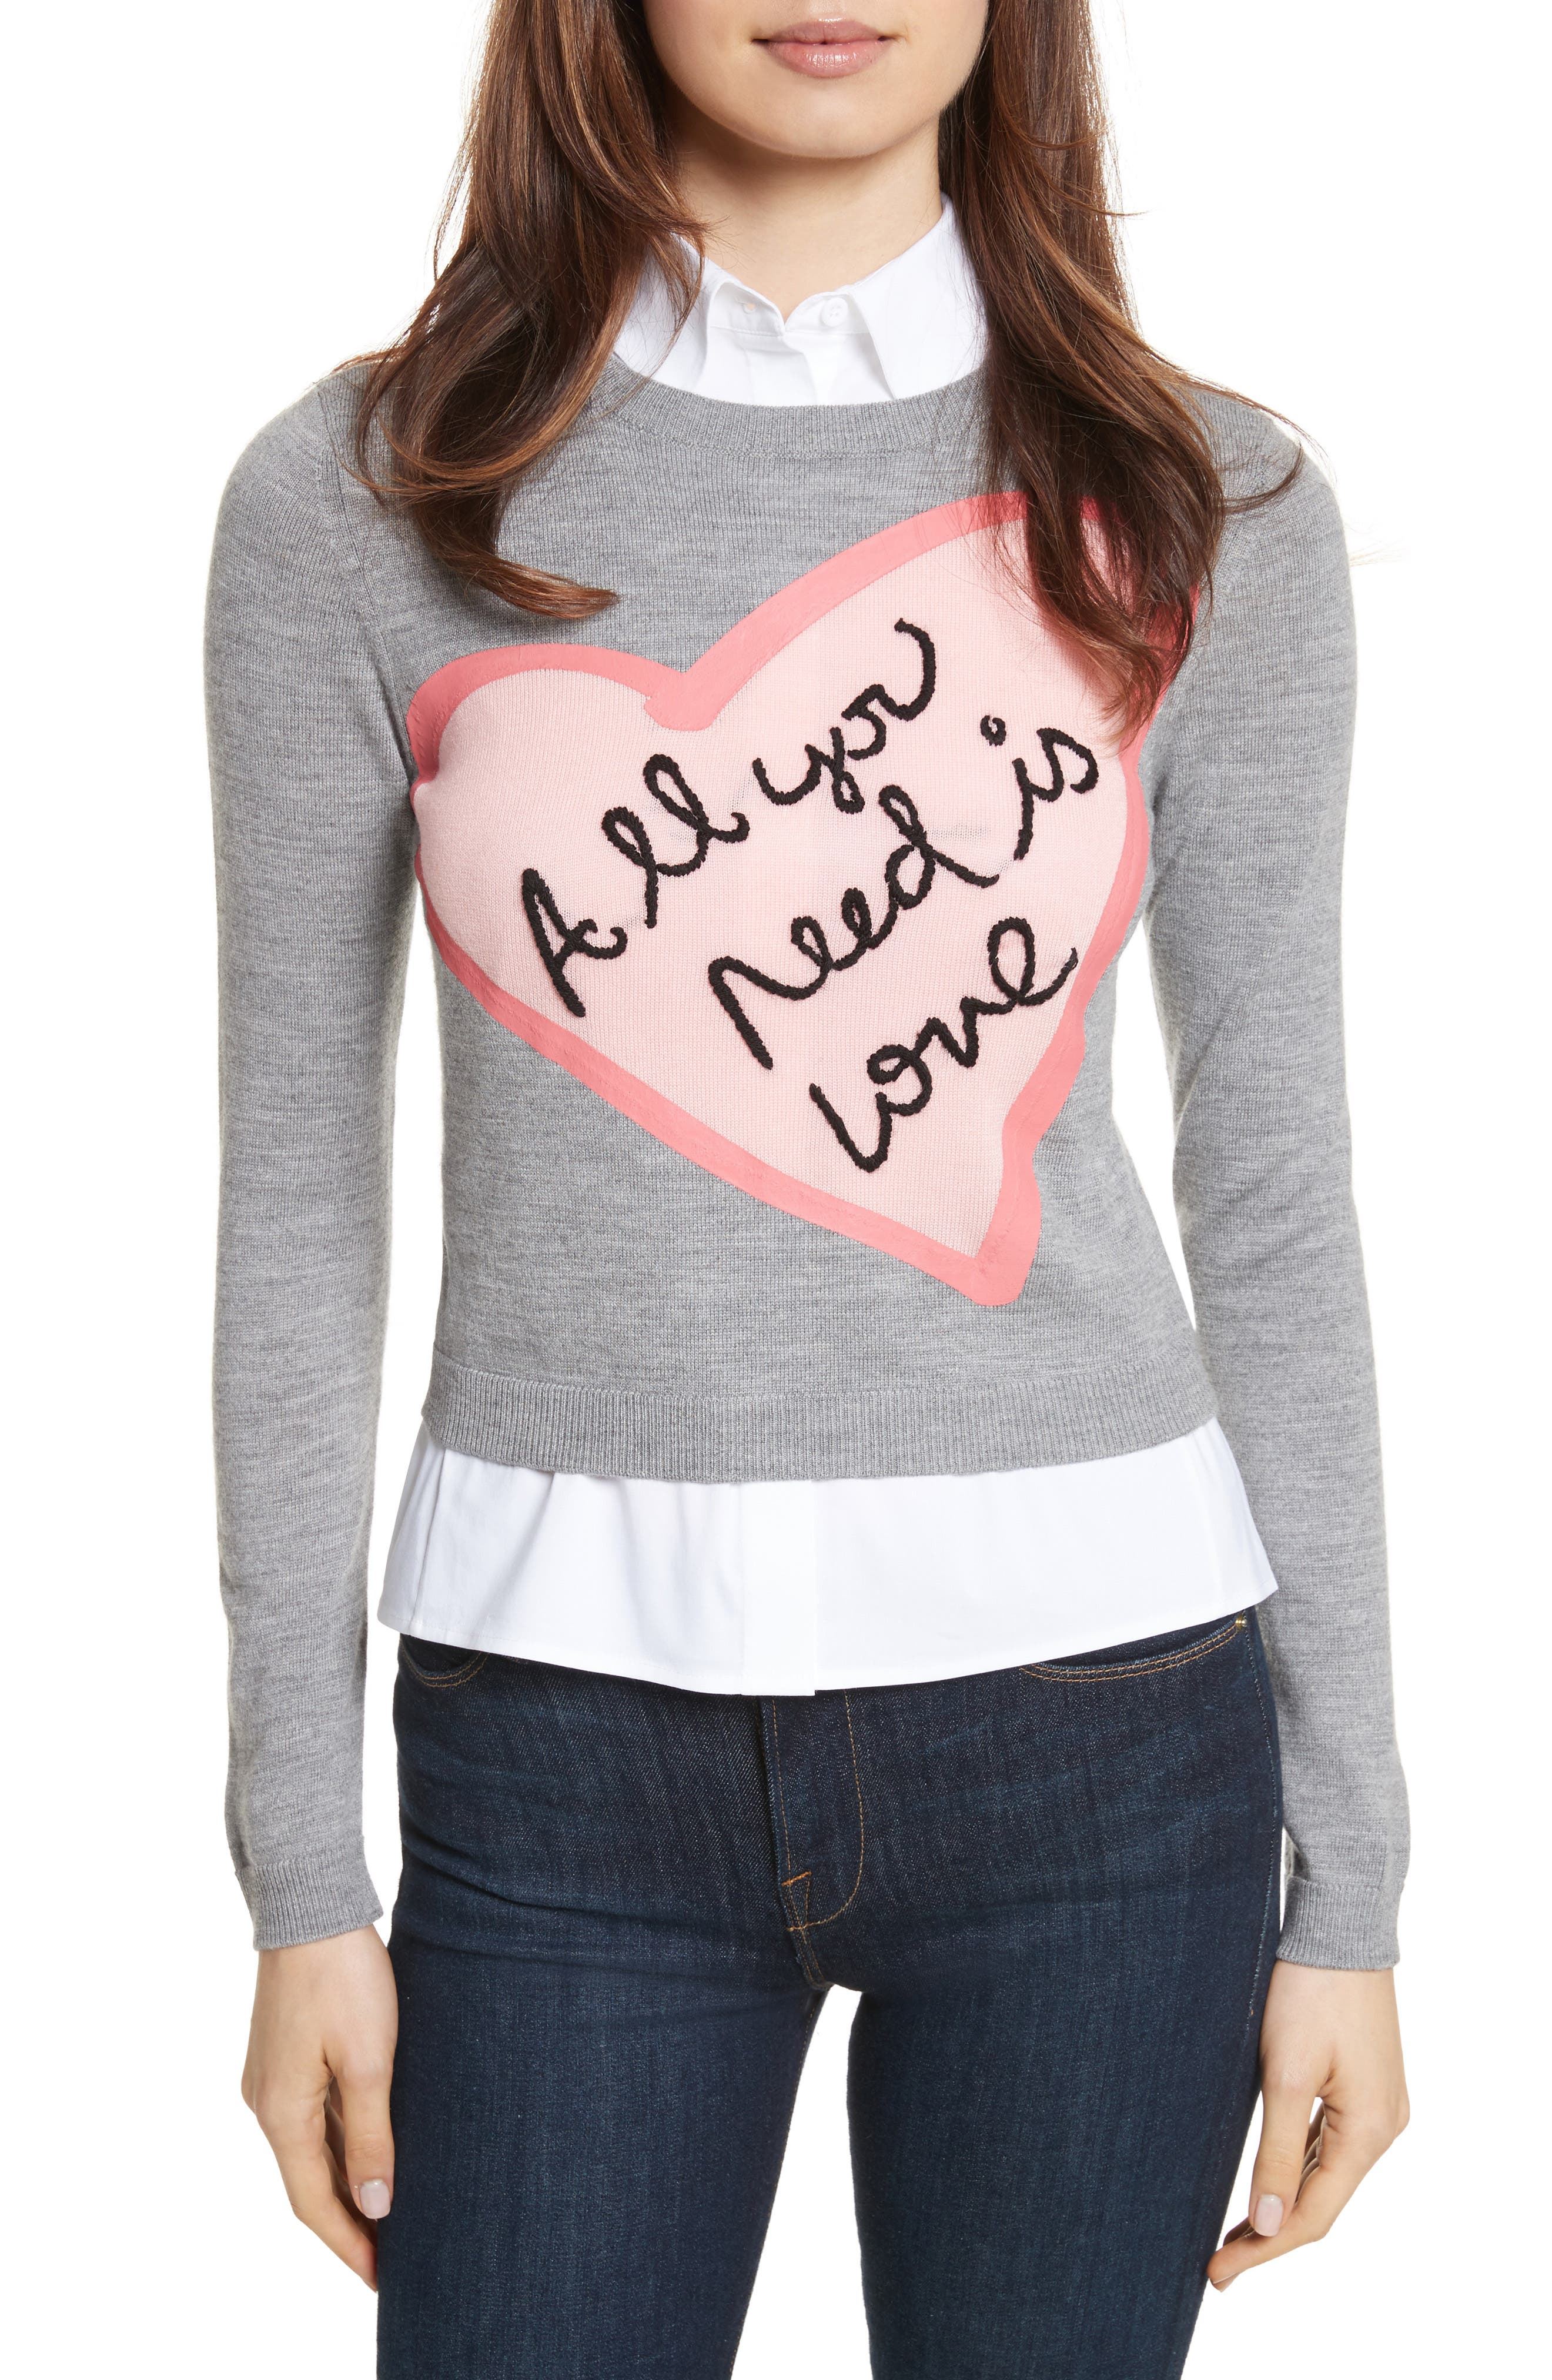 AO x The Beatles Nikia All You Need is Love Pullover,                         Main,                         color, Medium Grey/ Pink/ White